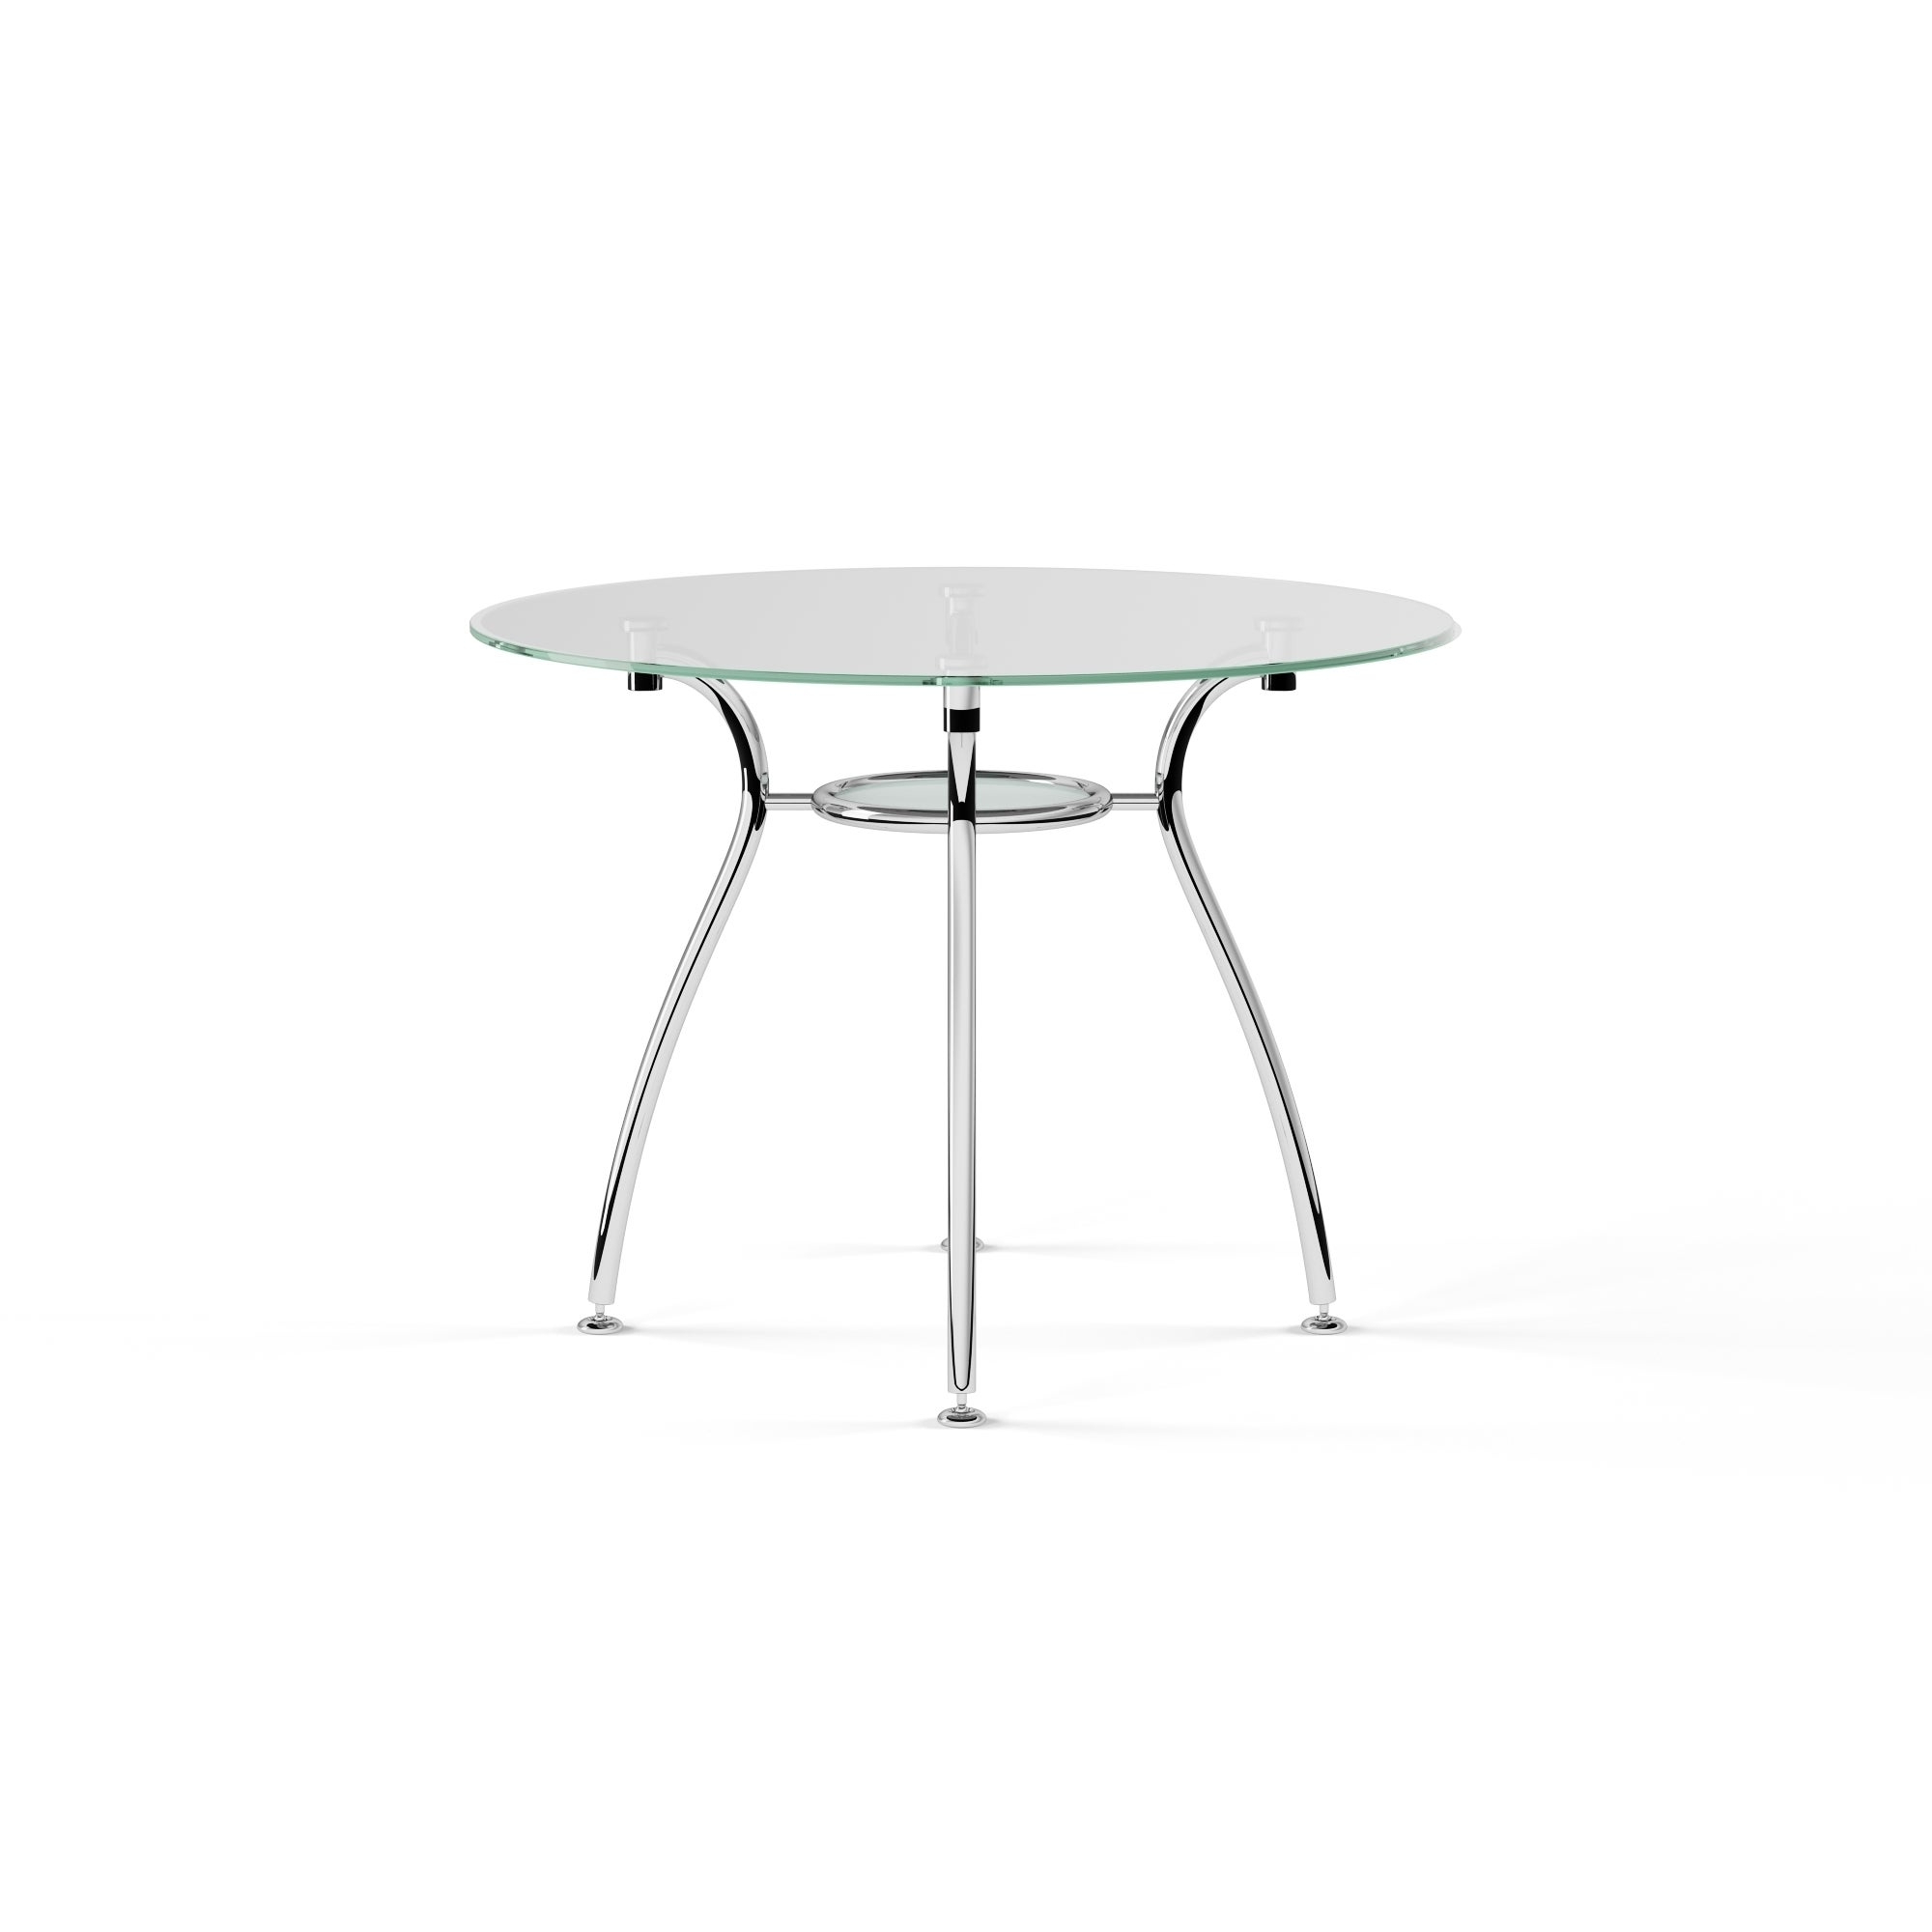 Chrome Dining Tables With Tempered Glass Throughout Well Known Porch & Den St. Paul Tempered Glass Chrome Round Dining Table (Gallery 13 of 30)